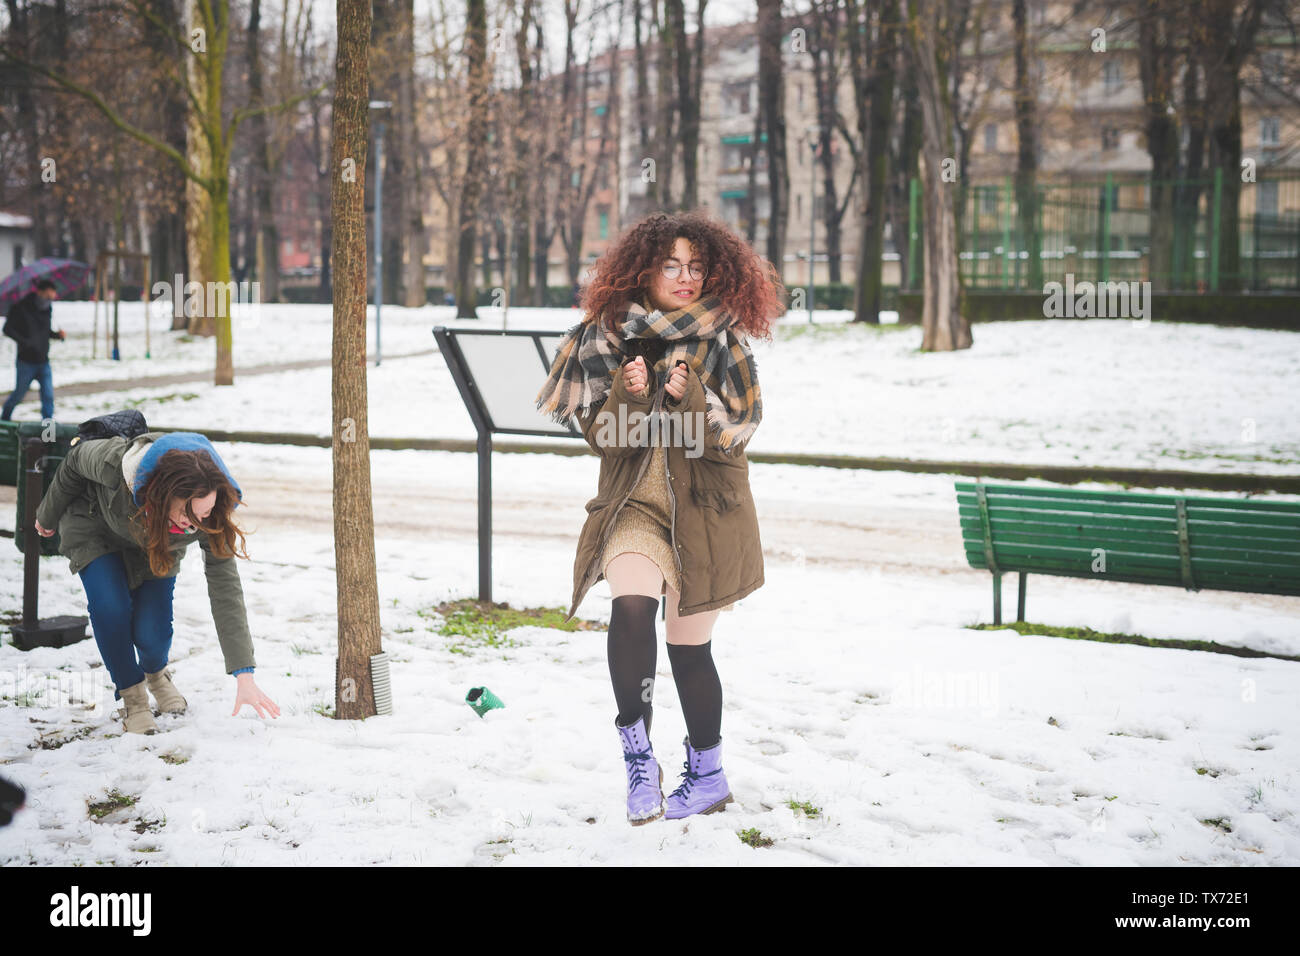 two young women playing in park with snow – day off, relationship, fun - Stock Image